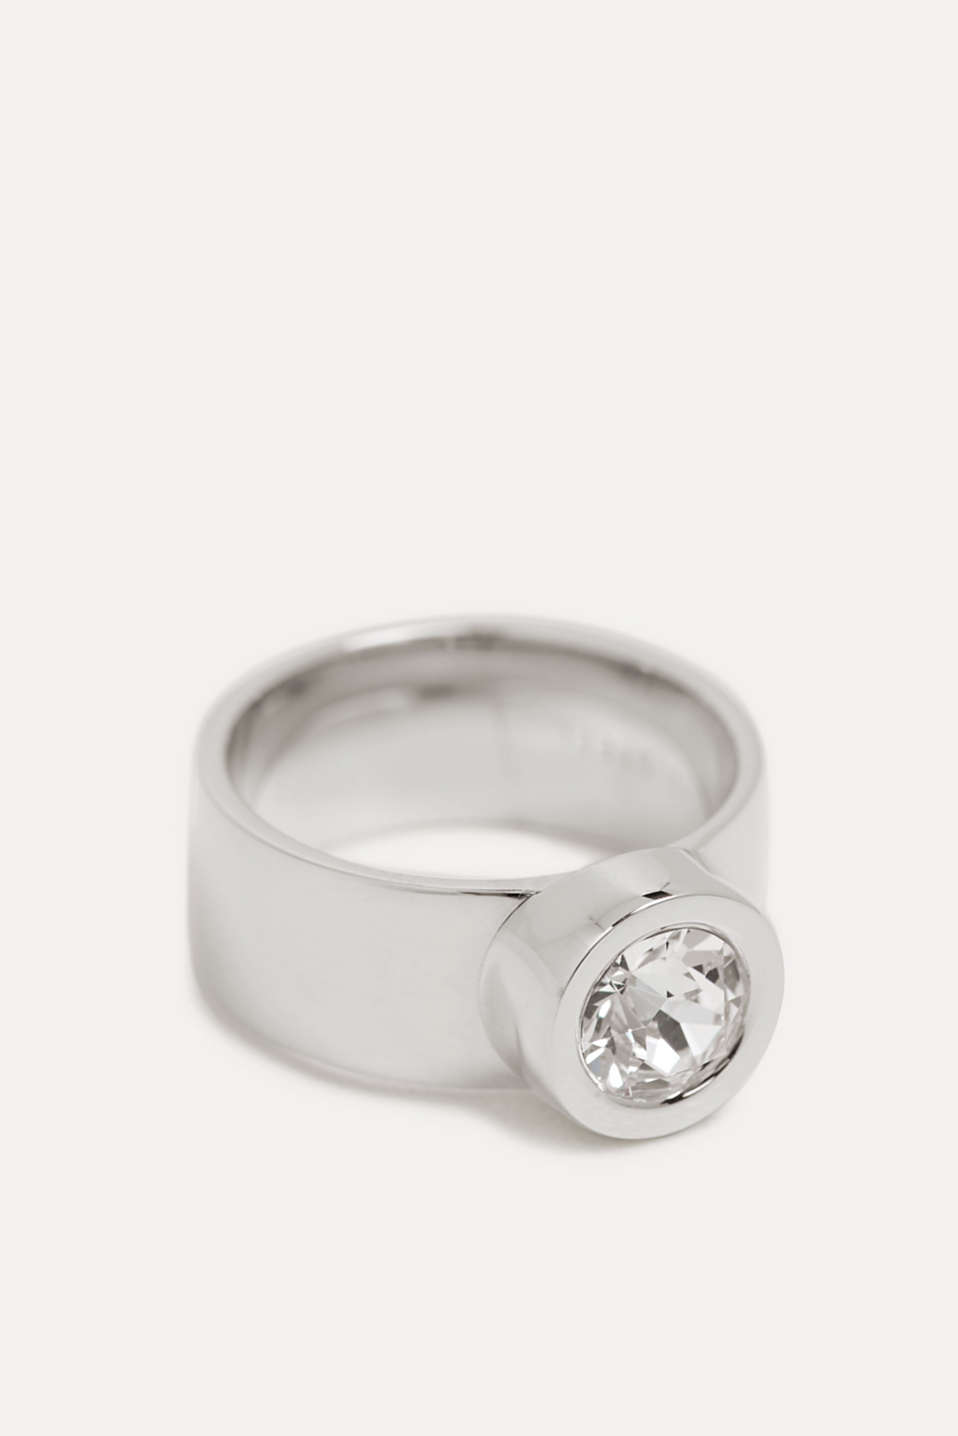 Esprit - Wide stainless-steel ring trimmed with zirconia